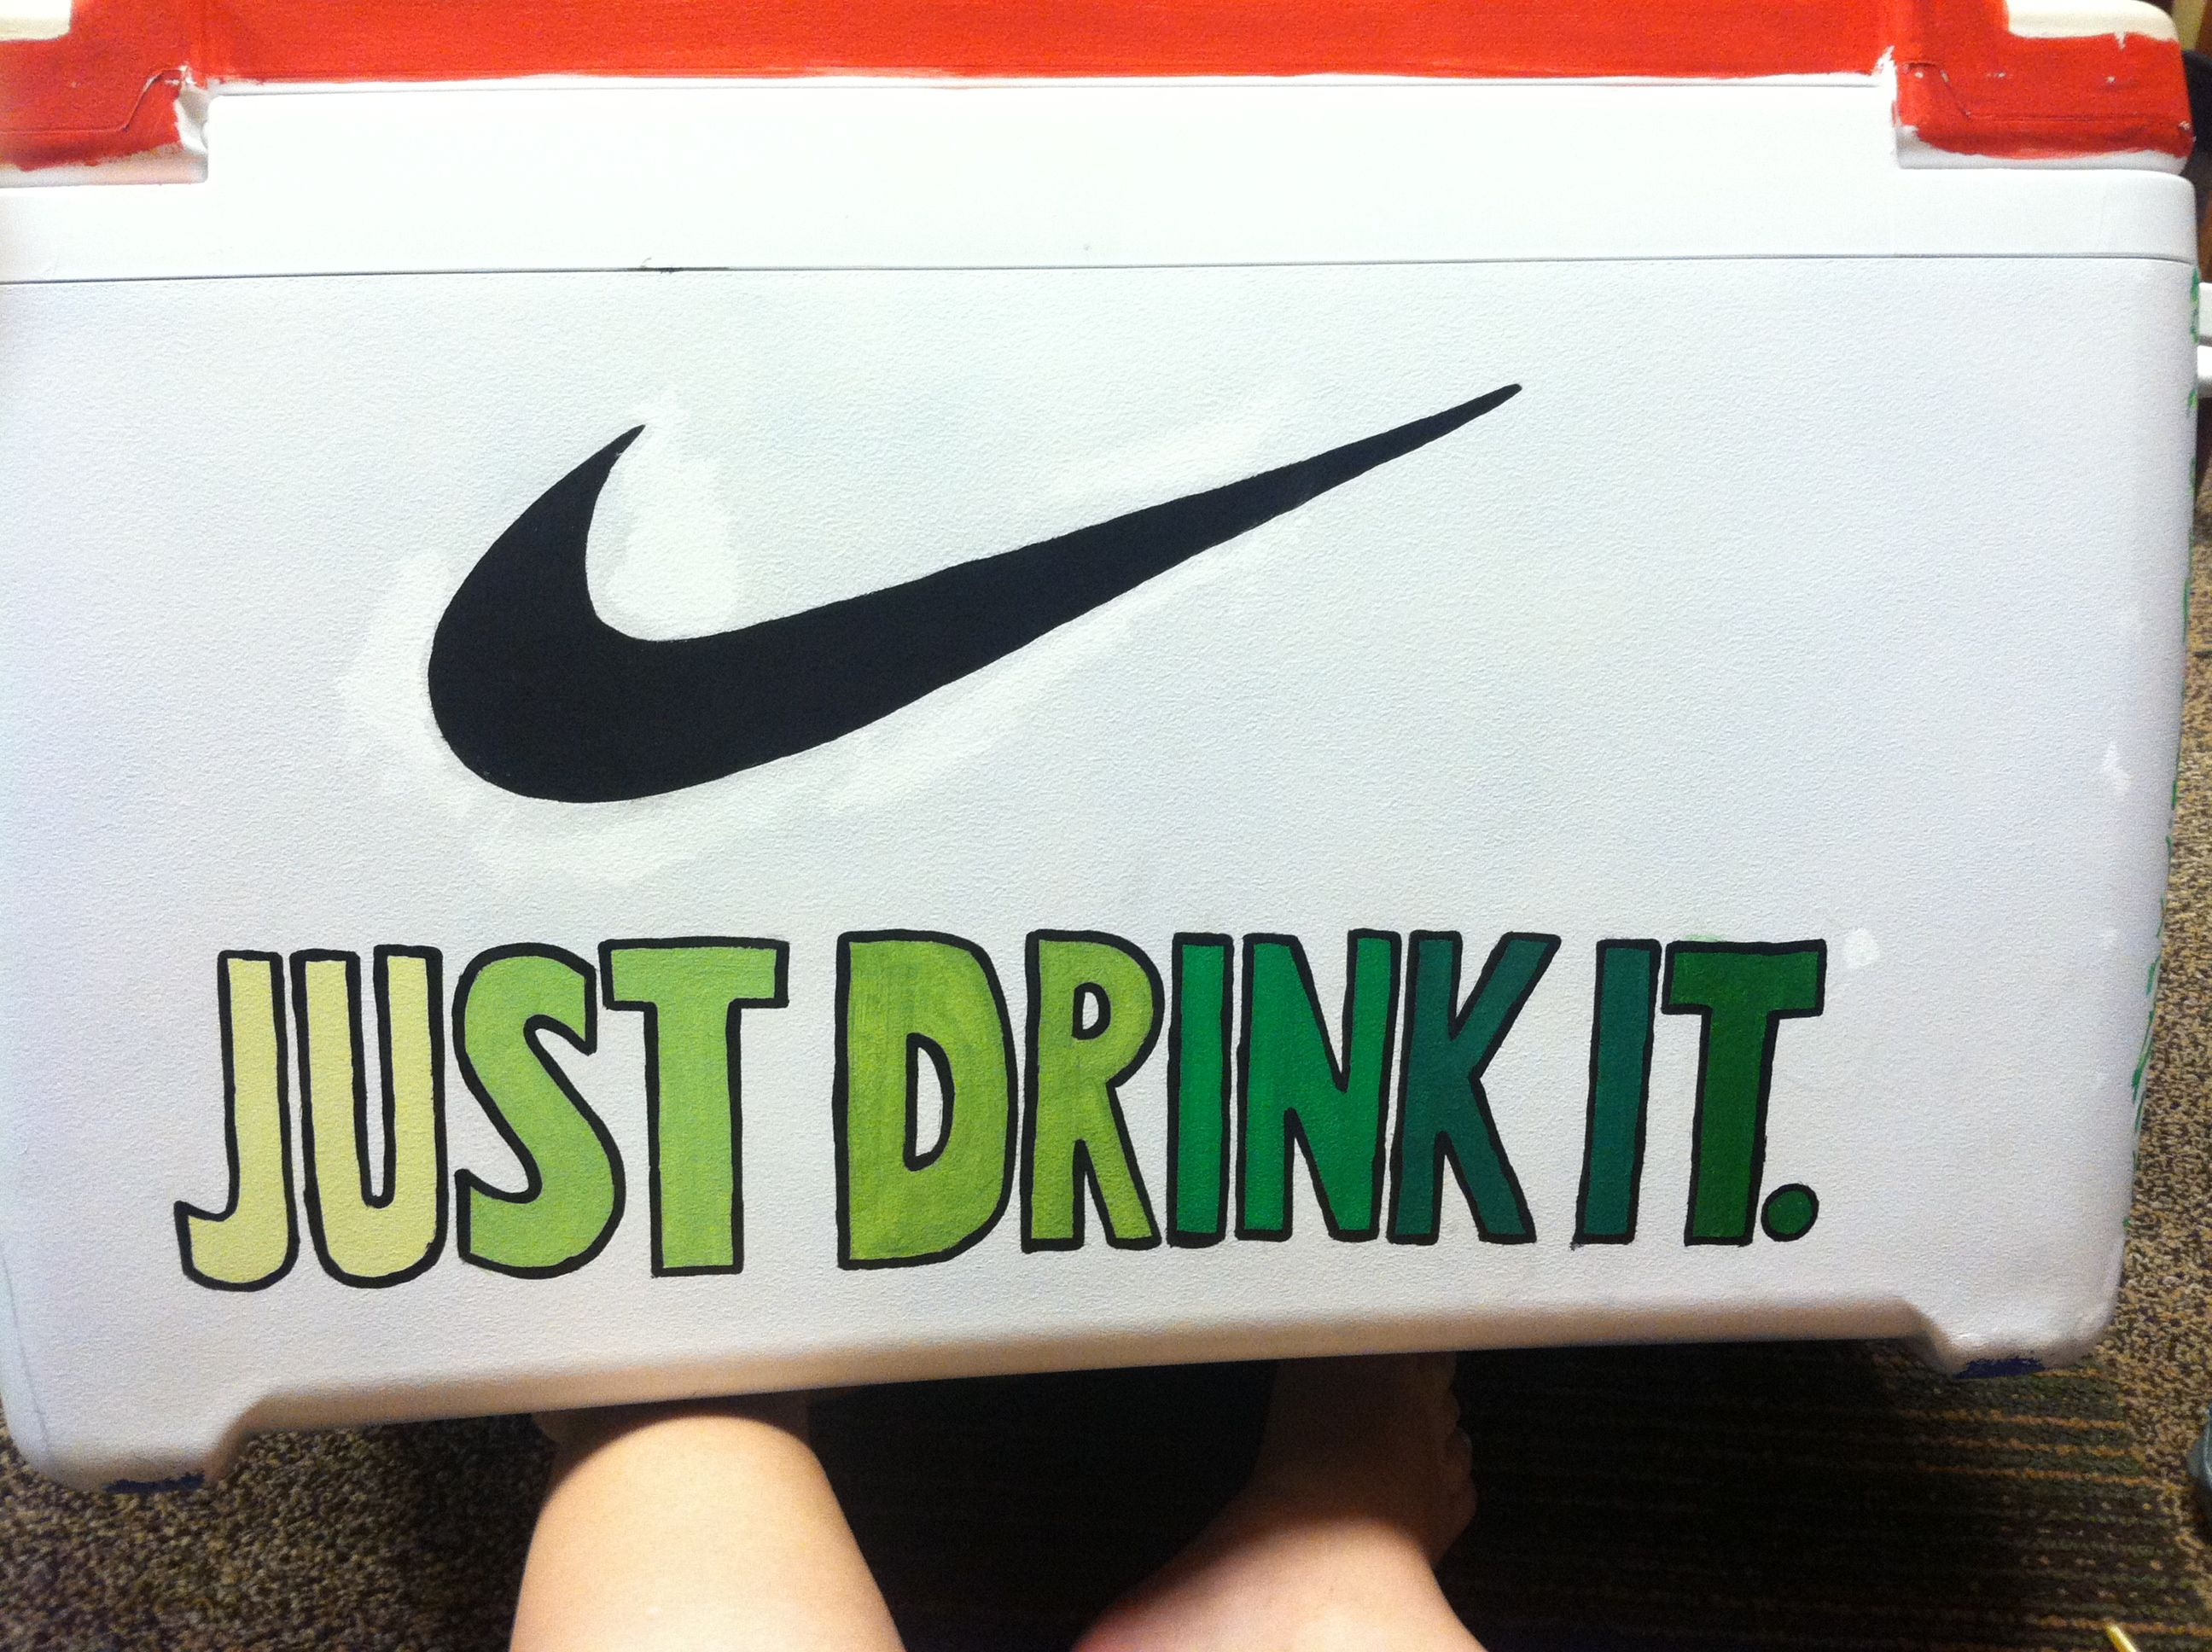 Just drink it nike cooler fraternity coolers